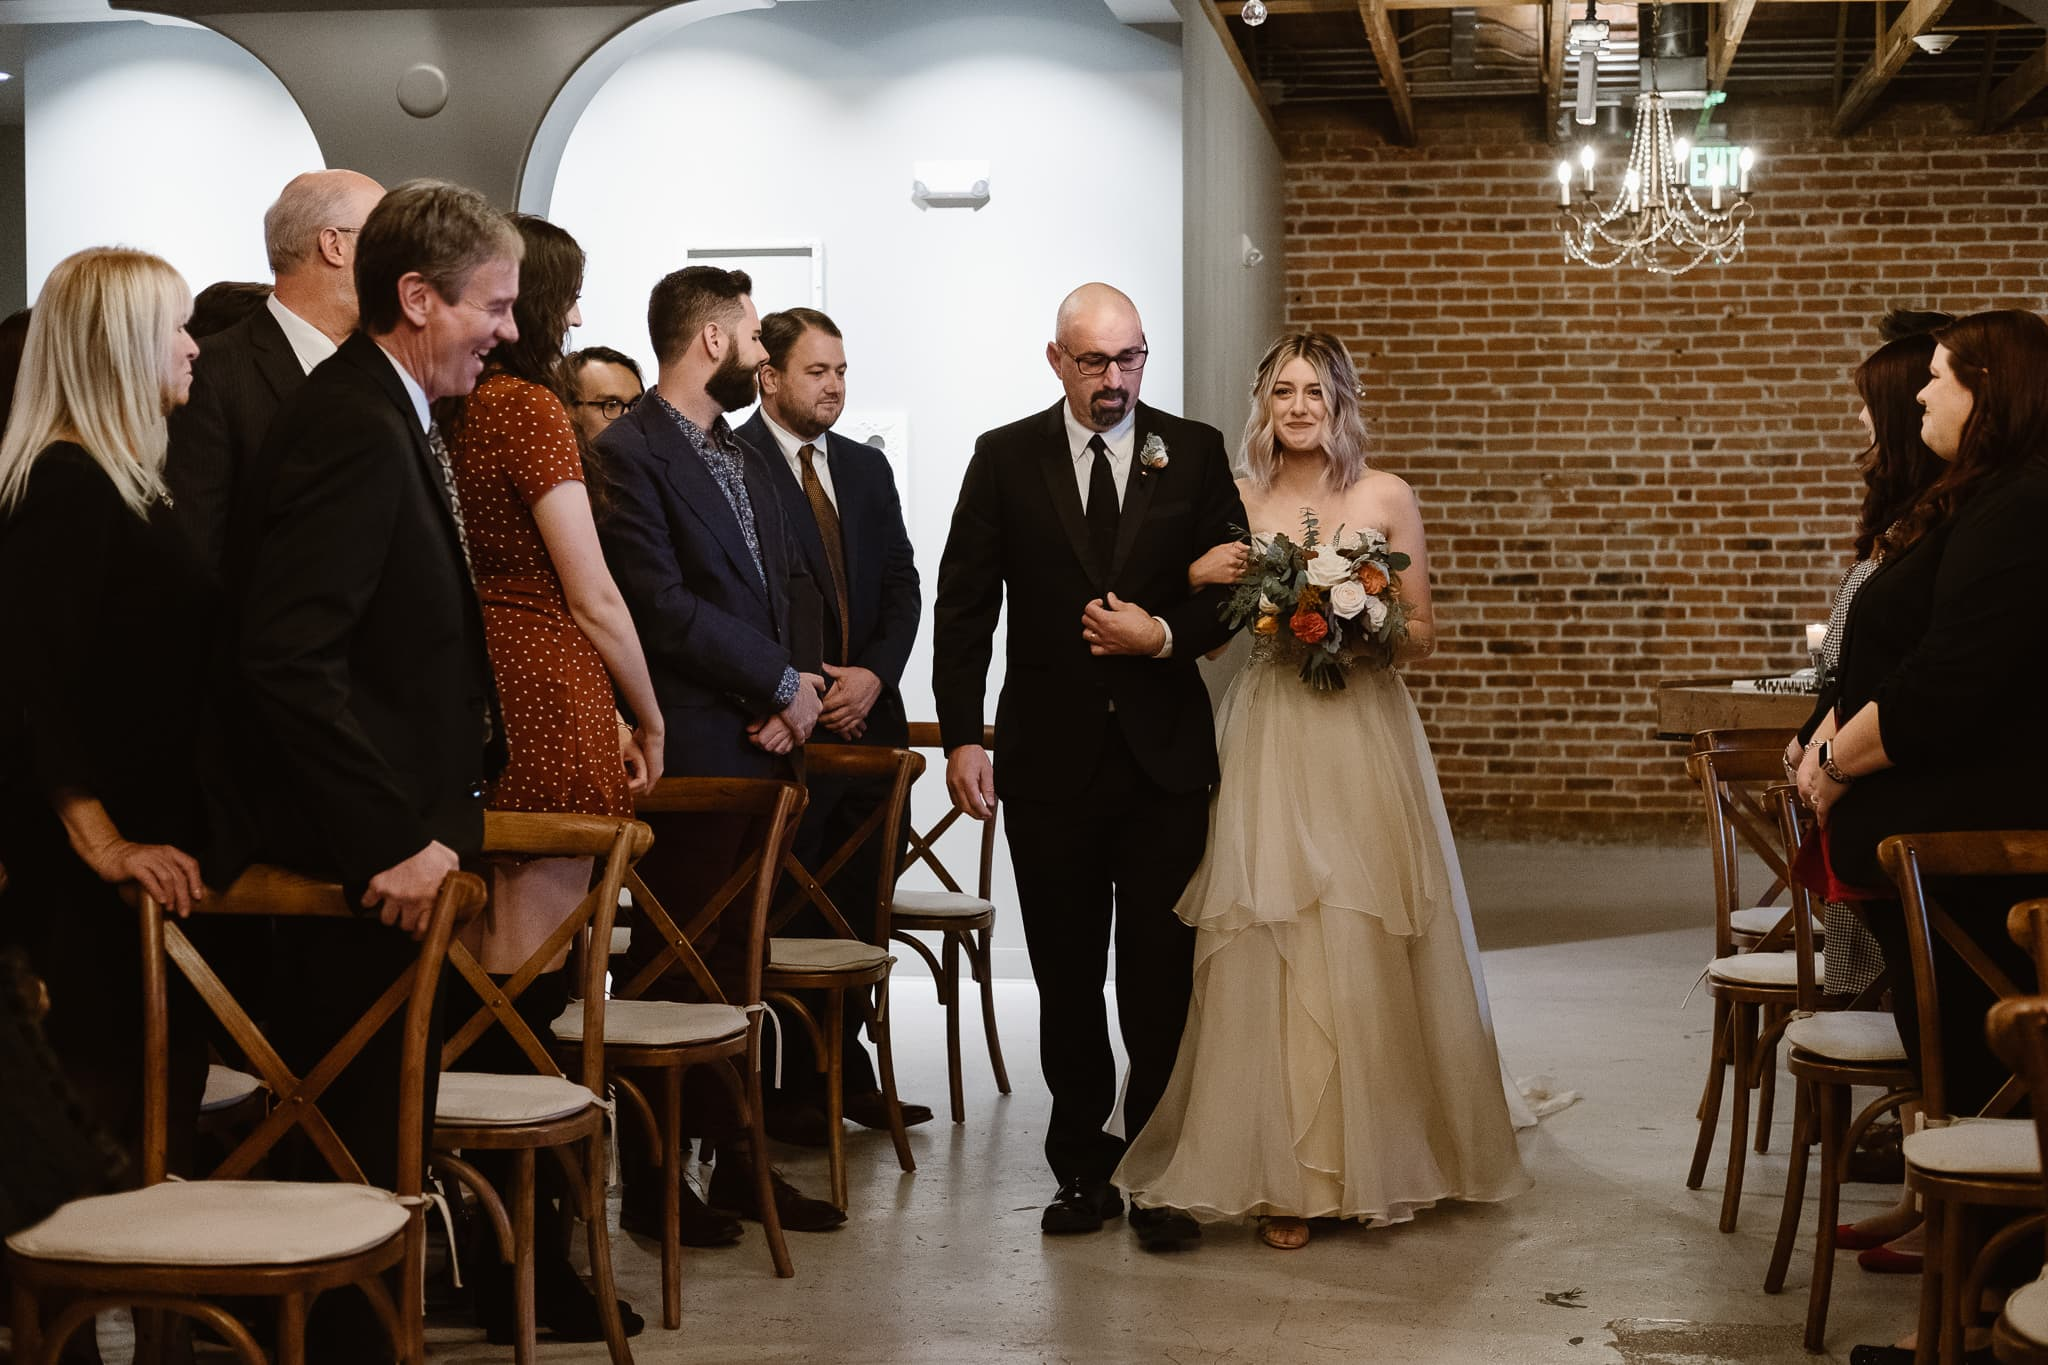 St Vrain Wedding Photographer | Longmont Wedding Photographer | Colorado Winter Wedding Photographer, Colorado industrial chic wedding ceremony, bride walking down aisle with her father